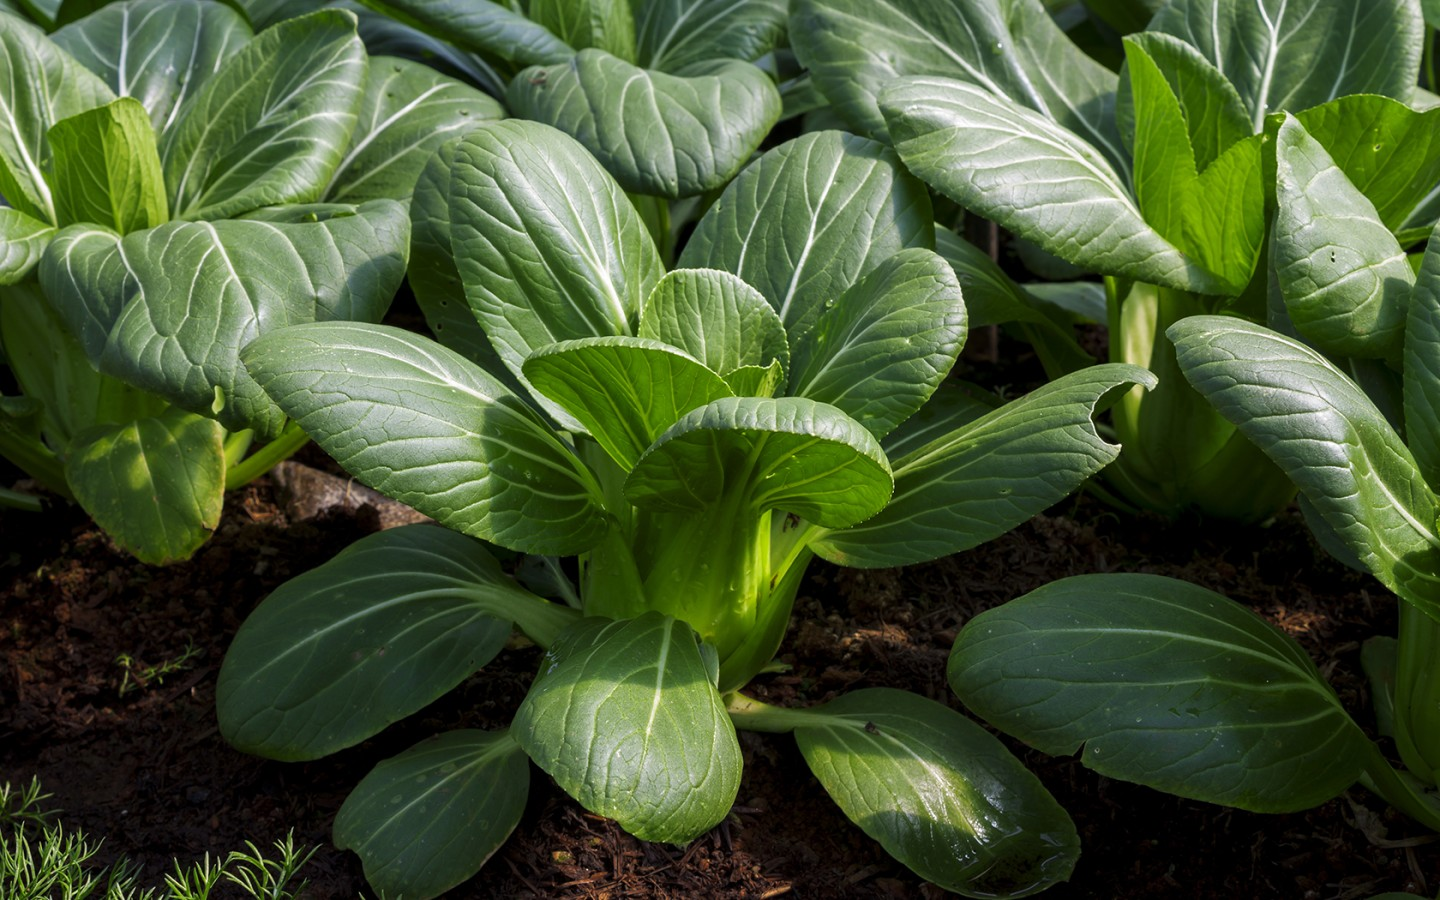 Vegetable of the Day: Bok Choy